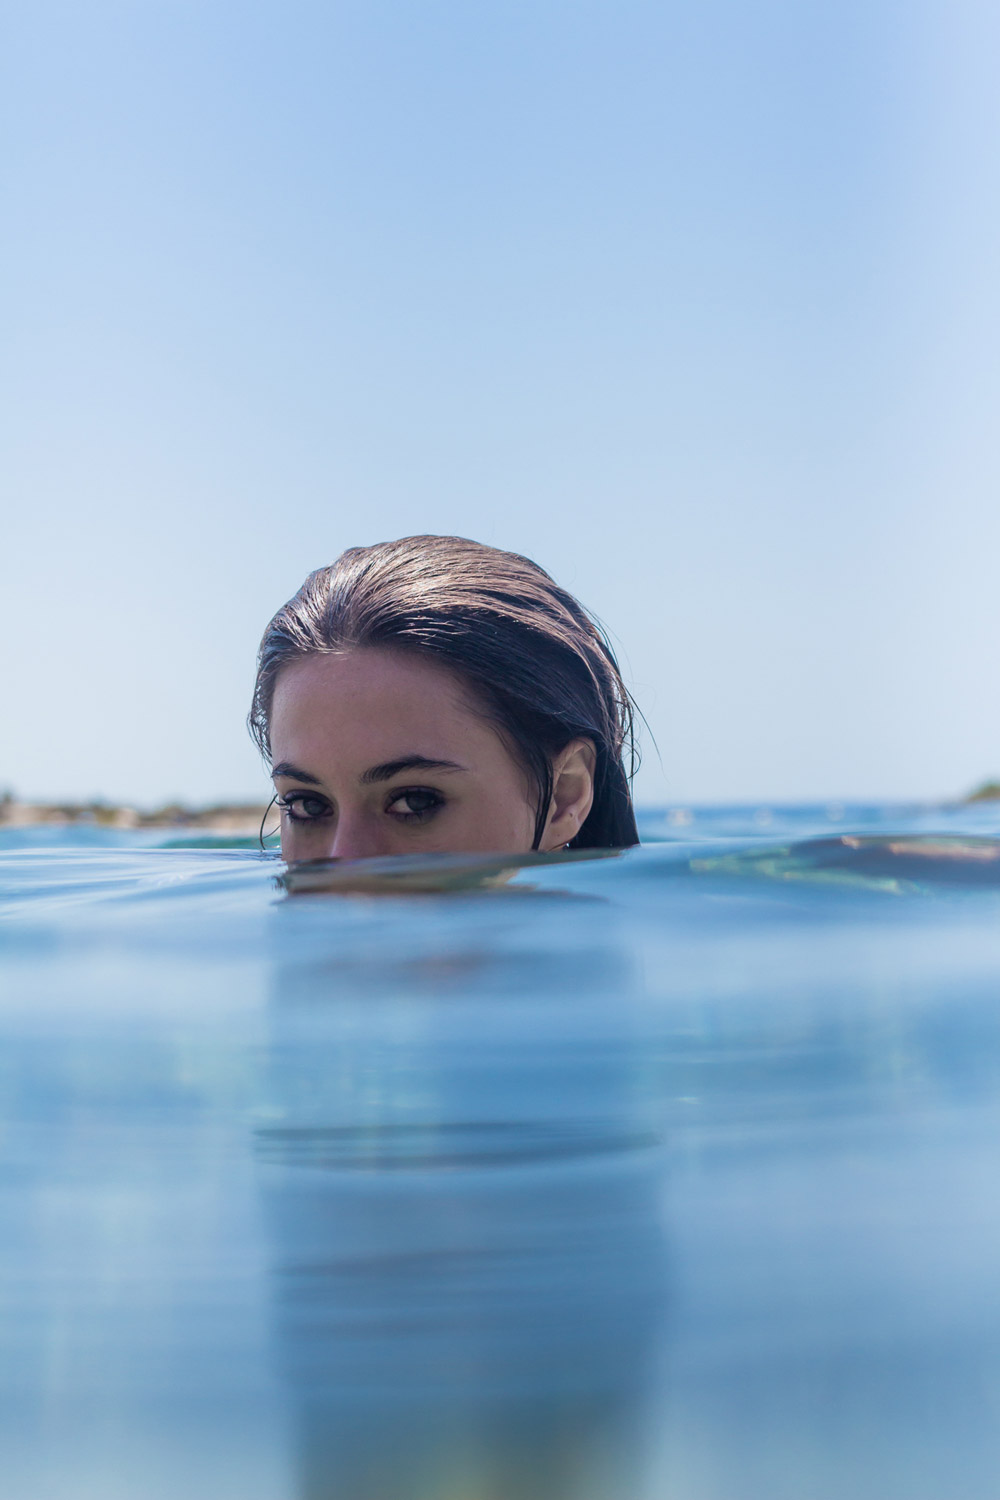 10 tips how to protect your hair from chlorine, salt water